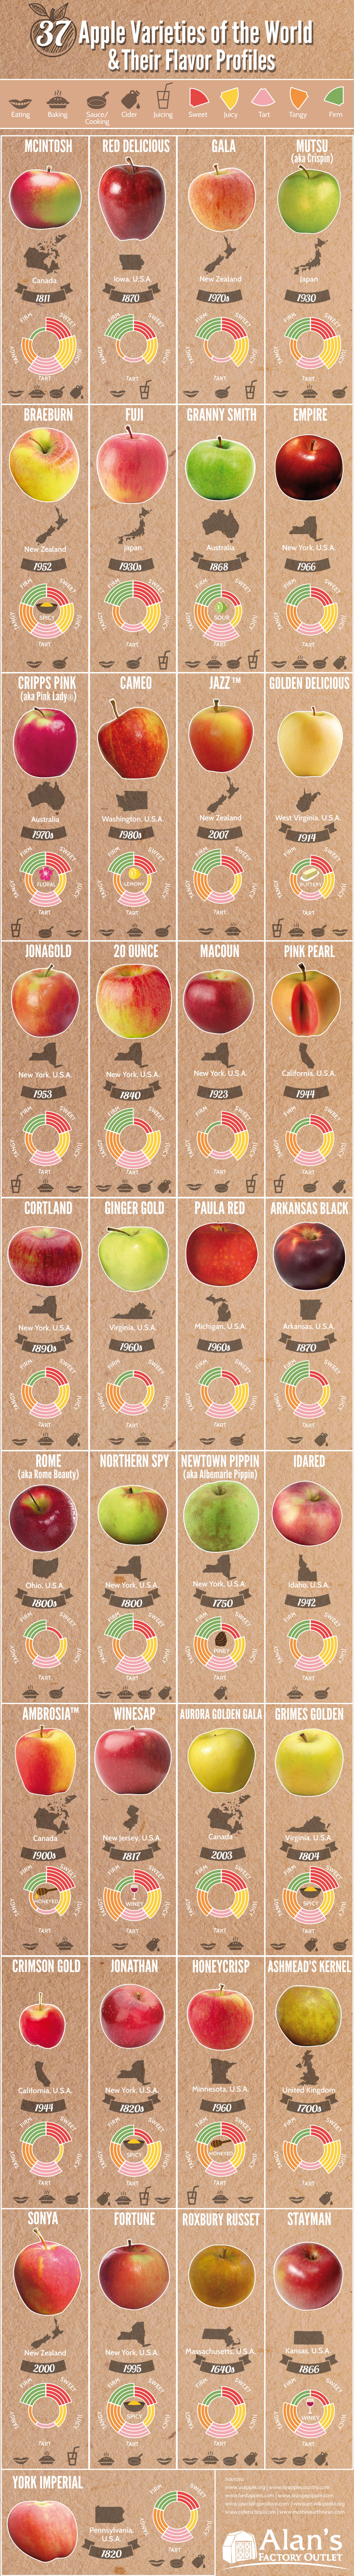 Flavour Guide of Best Known Apple Varieties - Infographic